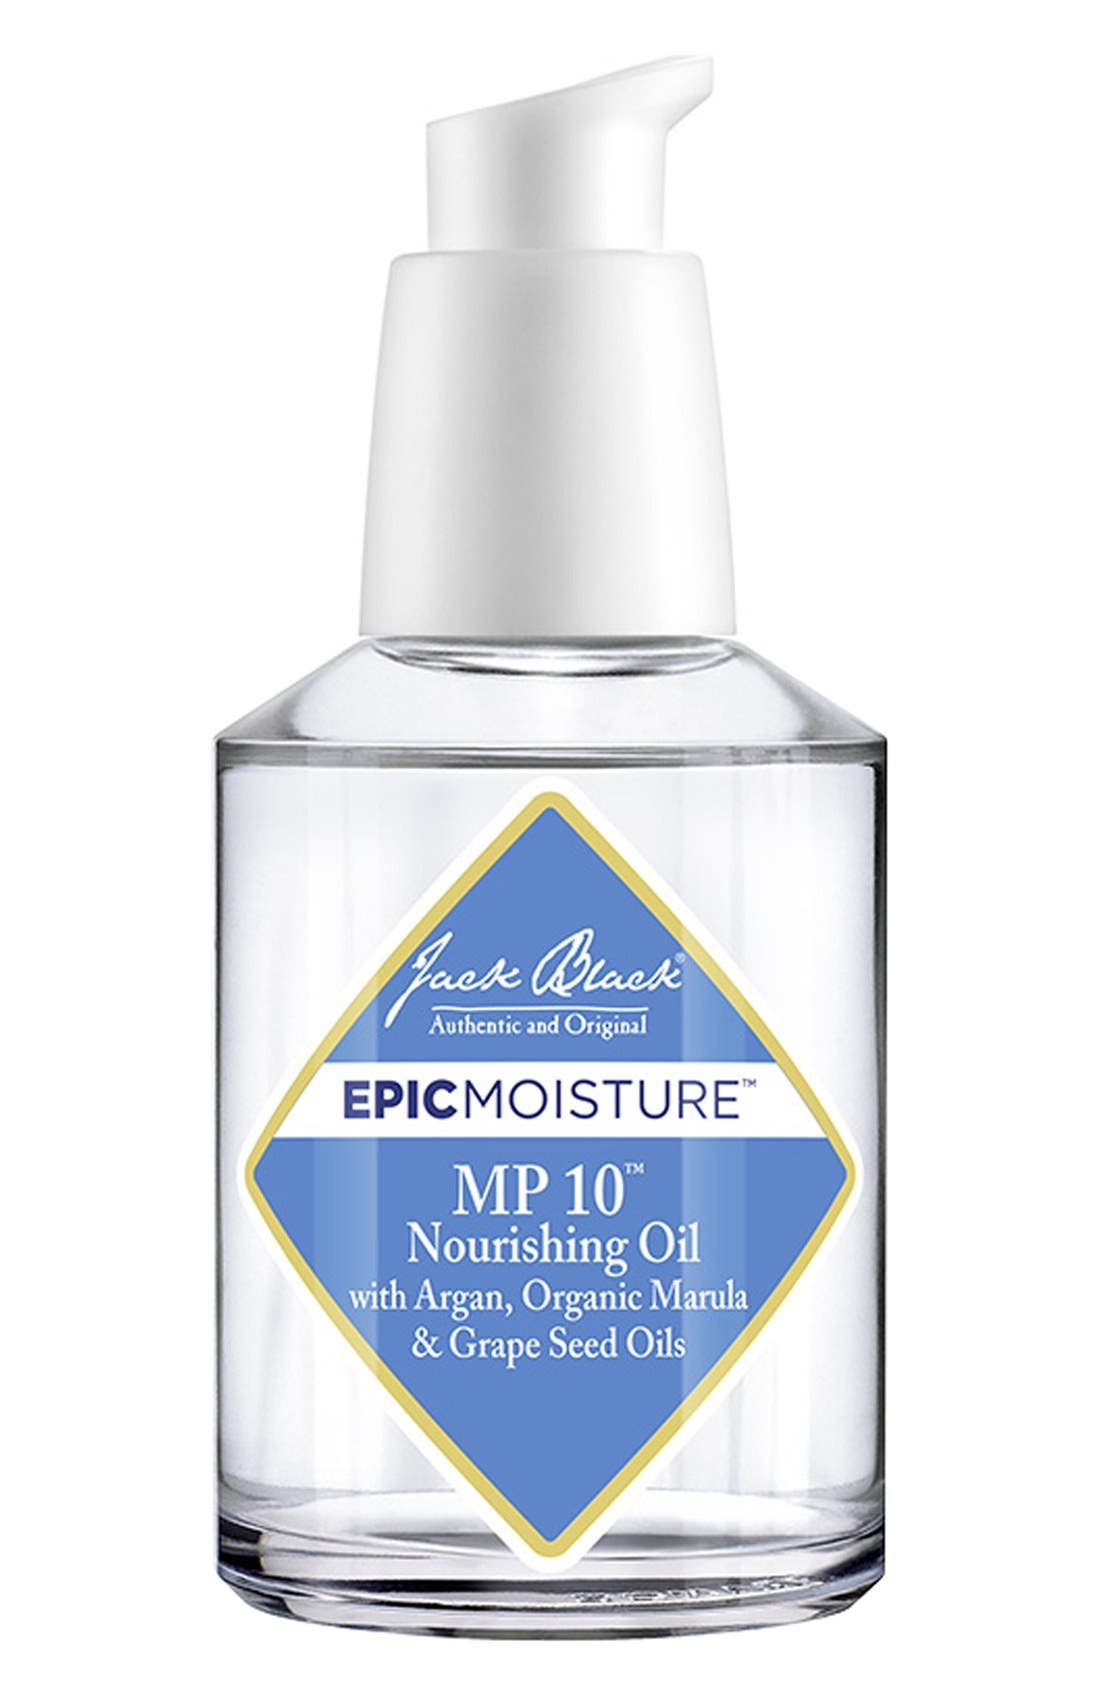 Jack Black 'Epic Moisture™' MP 10™ Nourishing Oil